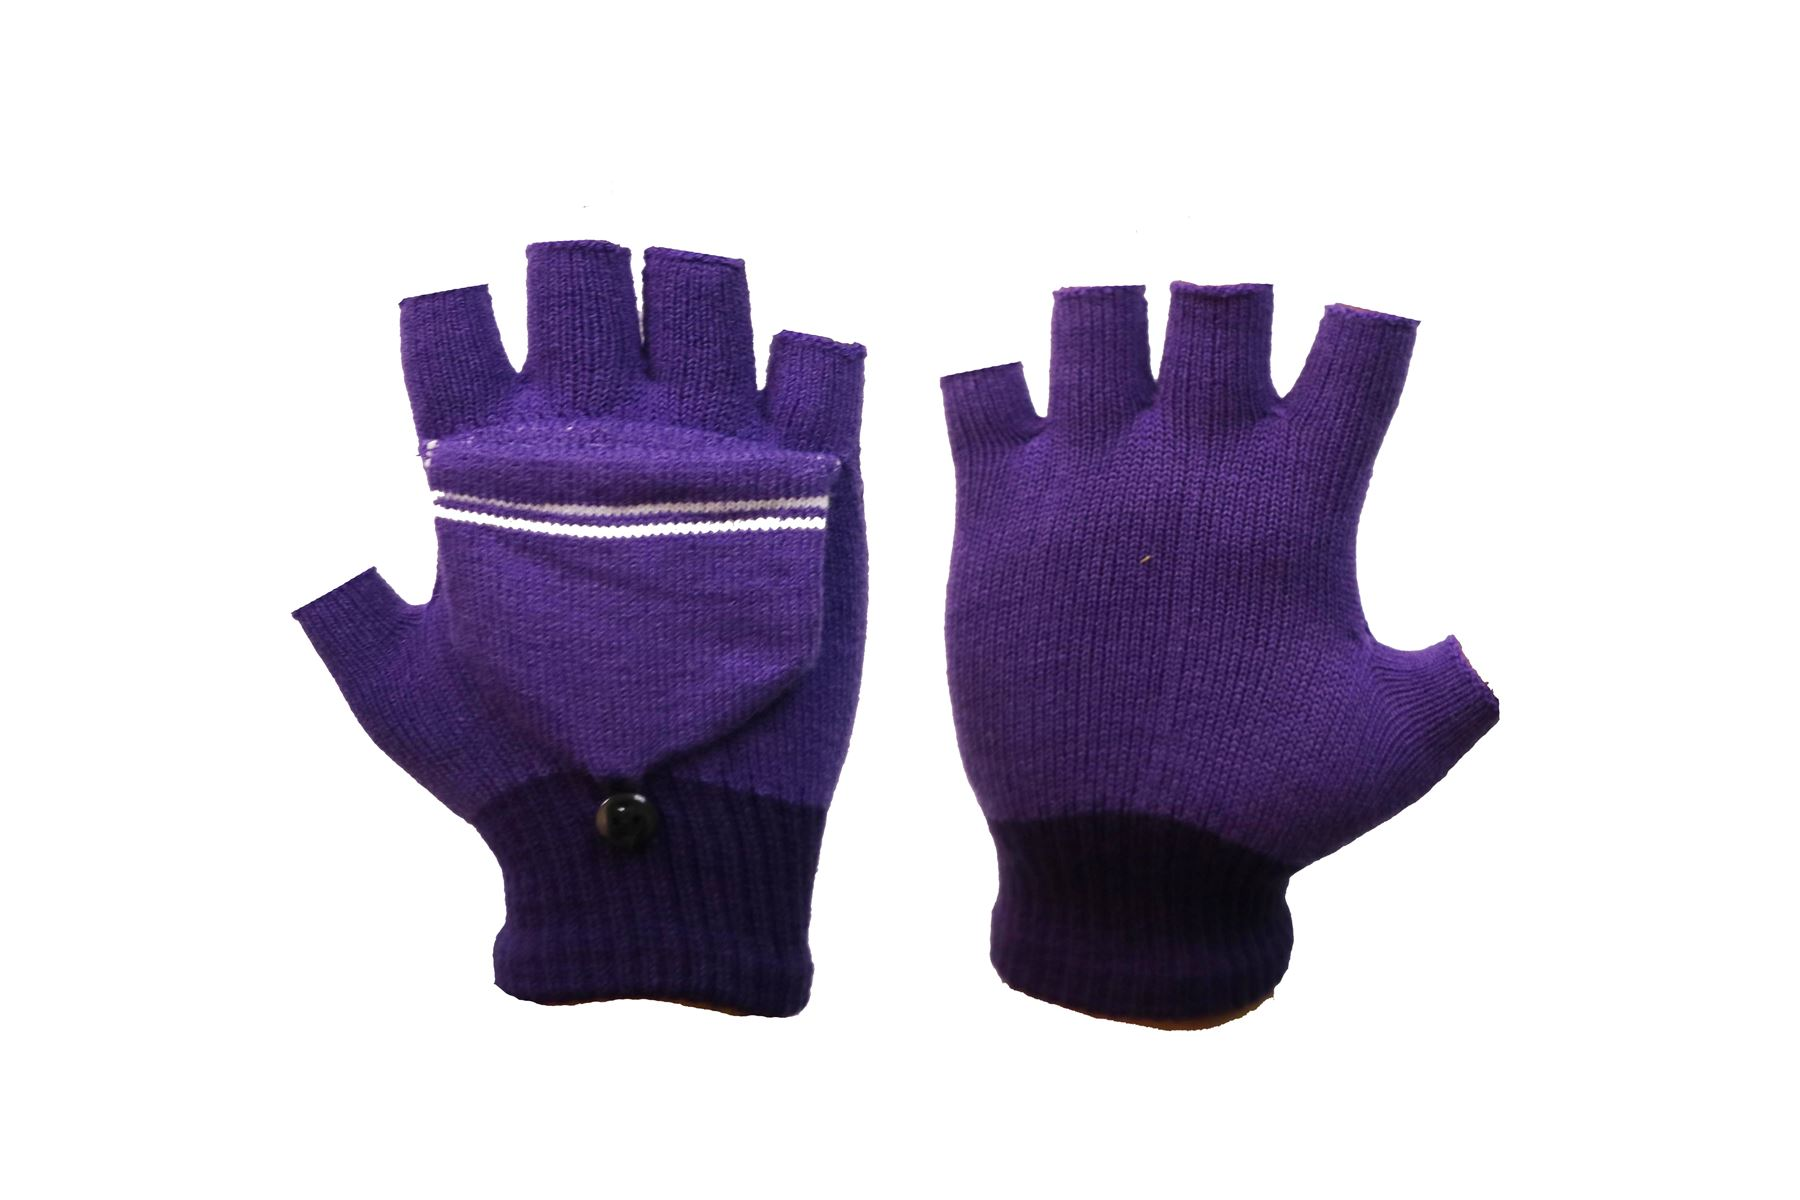 MITTEN GLOVE XMAS GL143 LADIES CONVERTER GLOVE MULTI USE 2in1 FINGERLESS GLOVE